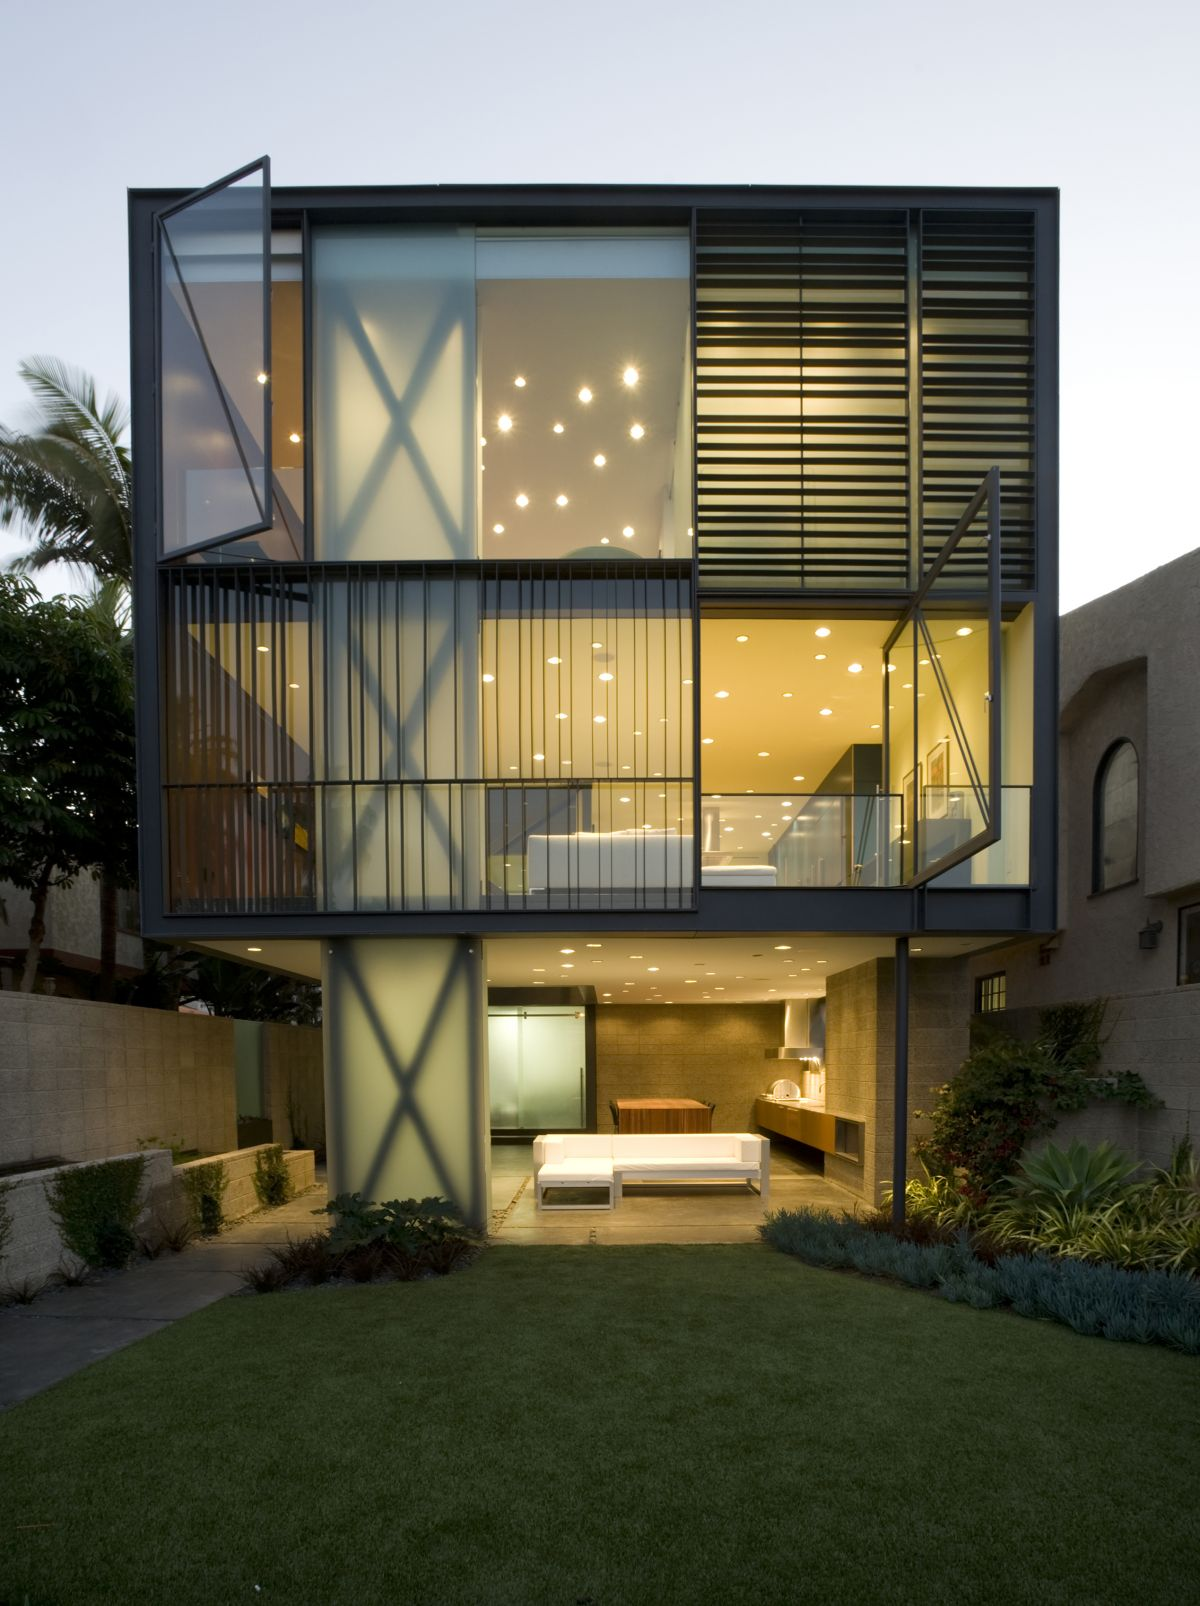 Garden, Hover House 3, Los Angeles, California